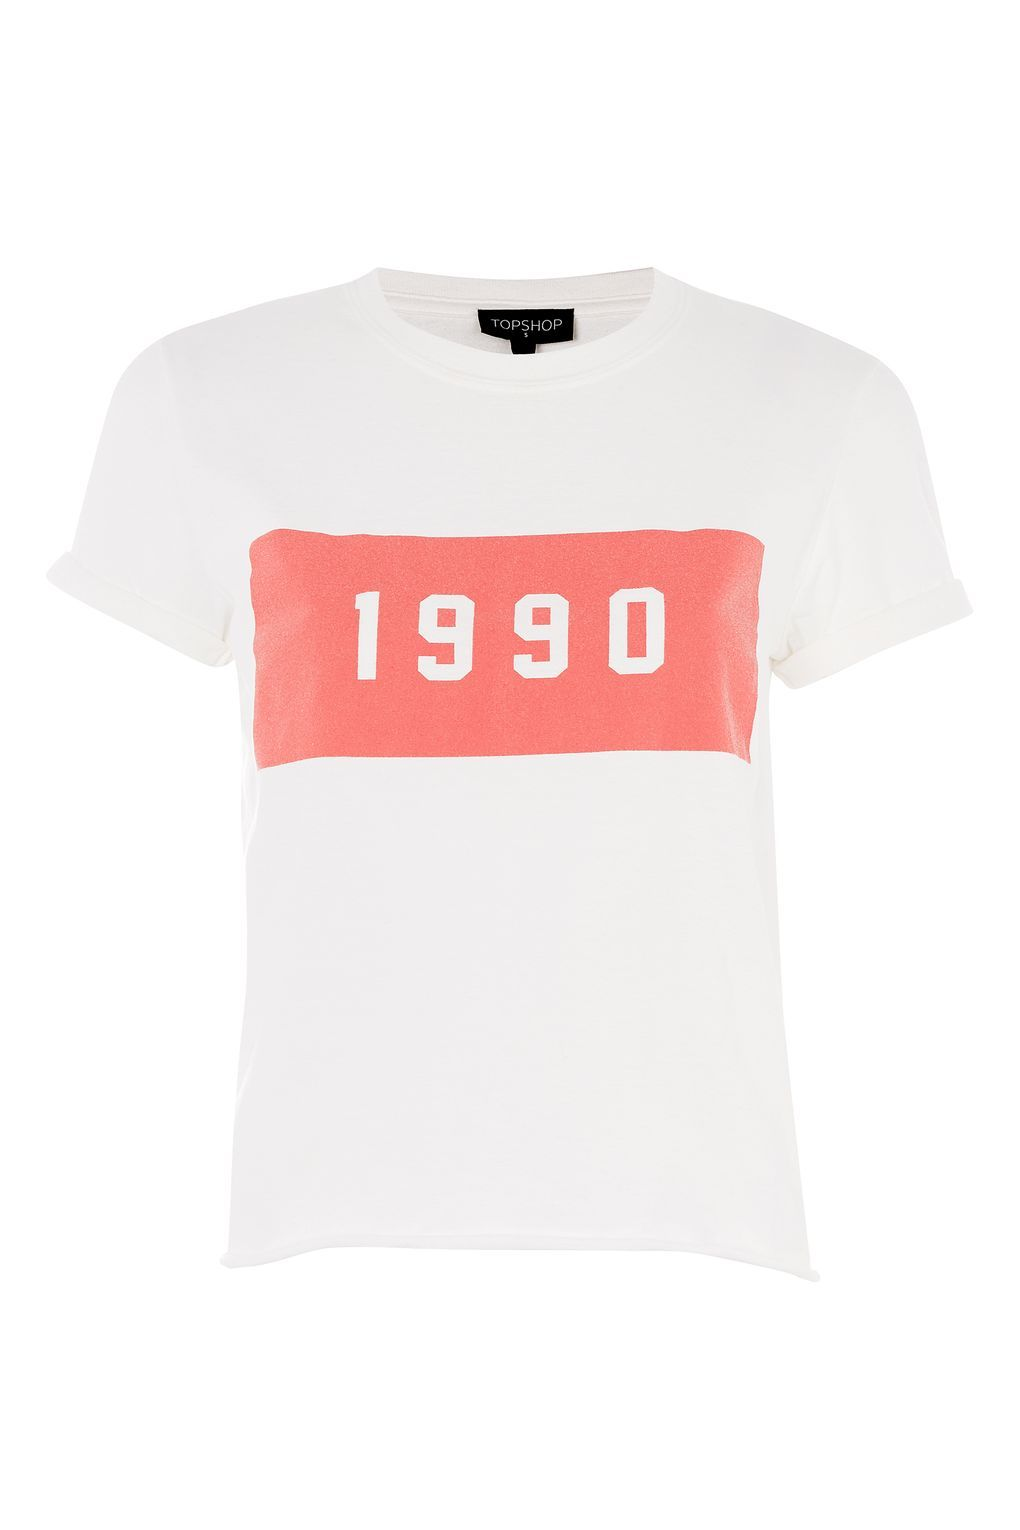 168ab0a250d38 Carousel Image 0 Topshop T Shirts, Cotton Tee, White Cotton T Shirts, Cool